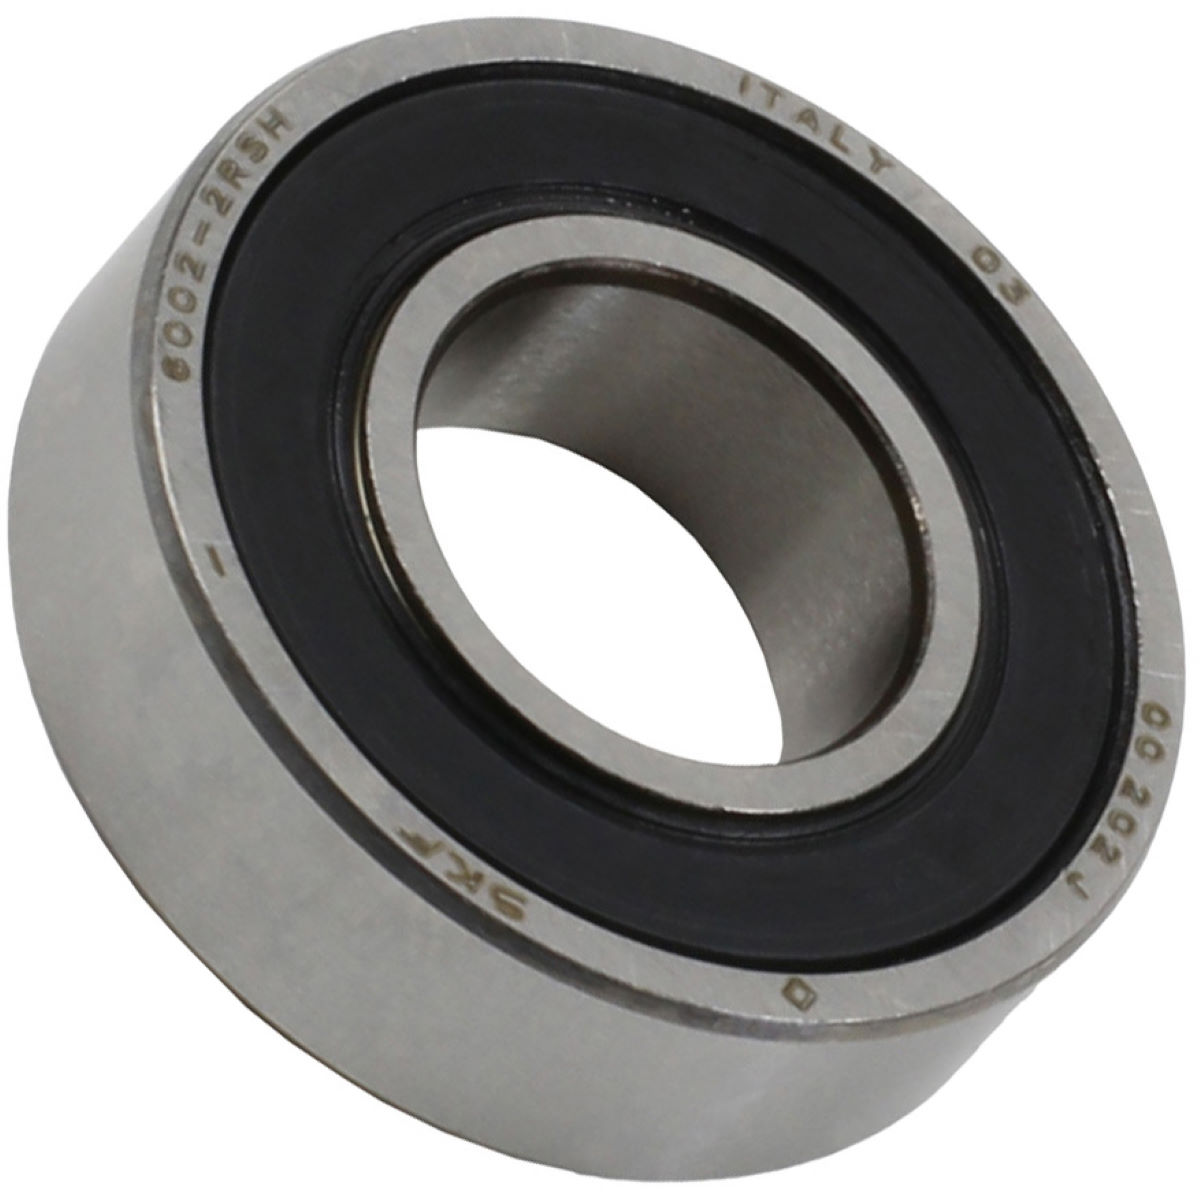 Hope 6002 2rs Bearing - One Size  Wheel Hub Spares